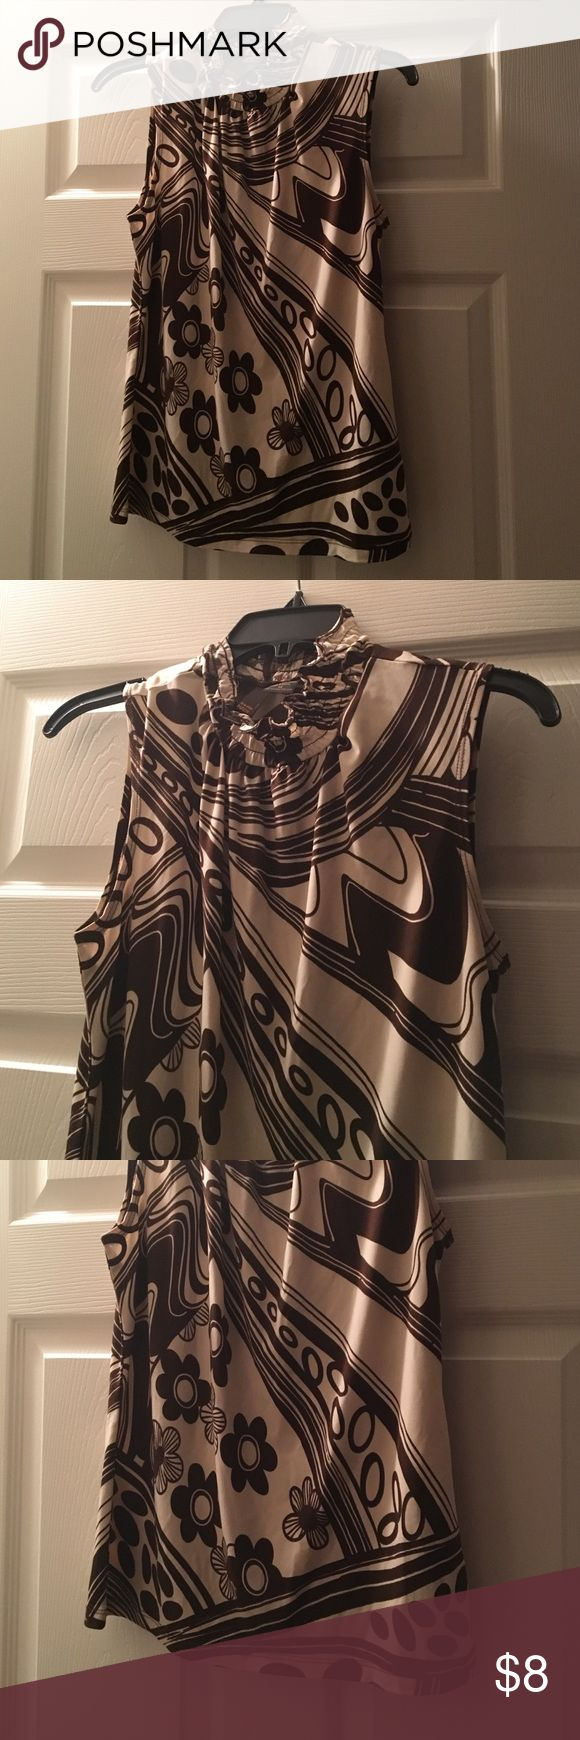 Retro Sleeveless Sere Nade Brown and Cream Top So cute under a jacket with its 80/20 Polyester Spandex blend, it will work well to make you feel a little dressed up with a relaxing casual feel.... must go ;) Sere Nade New York Tops Blouses